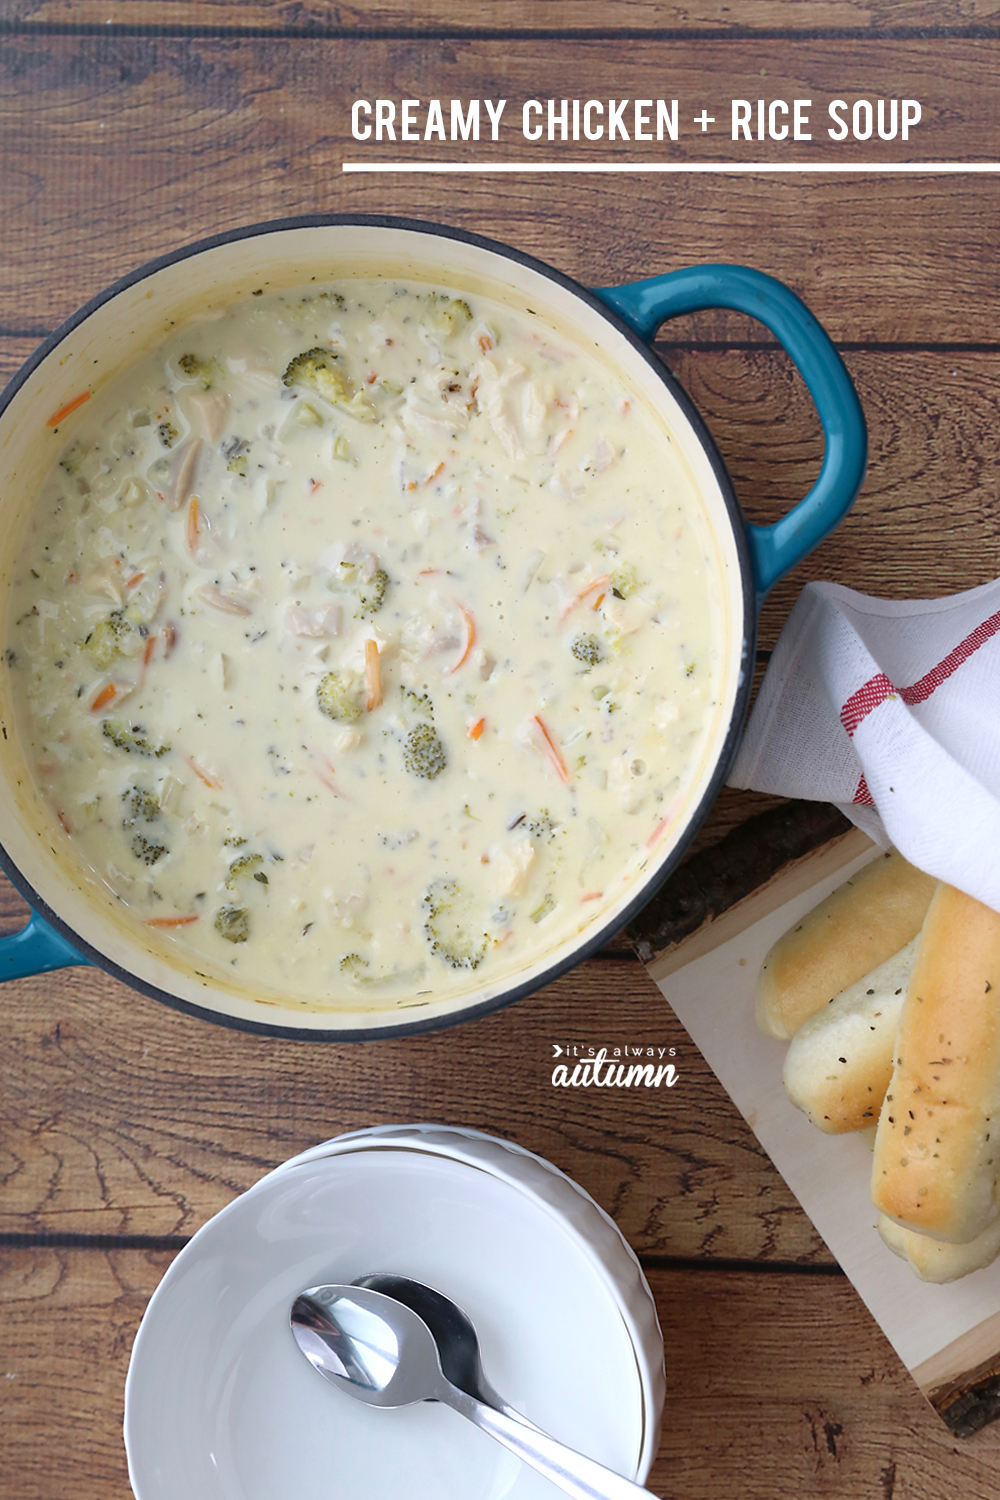 This creamy chicken and rice soup is divine! It's comfort food at it's finest AND very reasonable calorie wise!